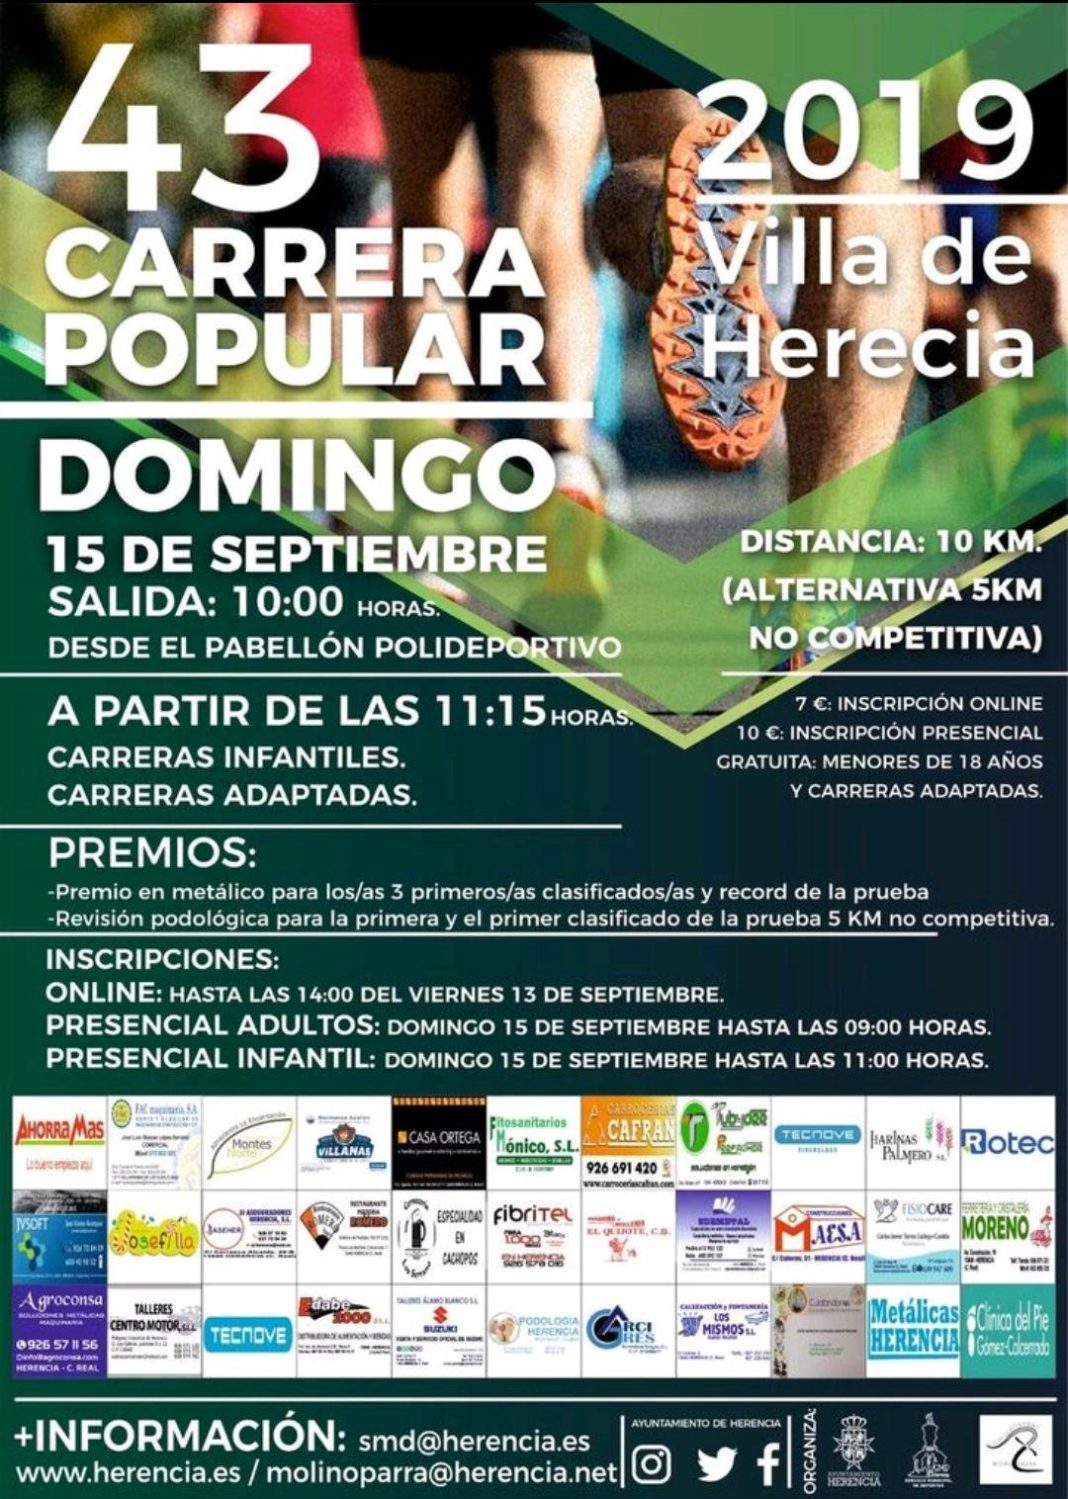 43 carrera popular herencia 2019 1068x1499 - Formulario de inscripción, reglamento y horarios de la 43 Carrera Popular de Herencia